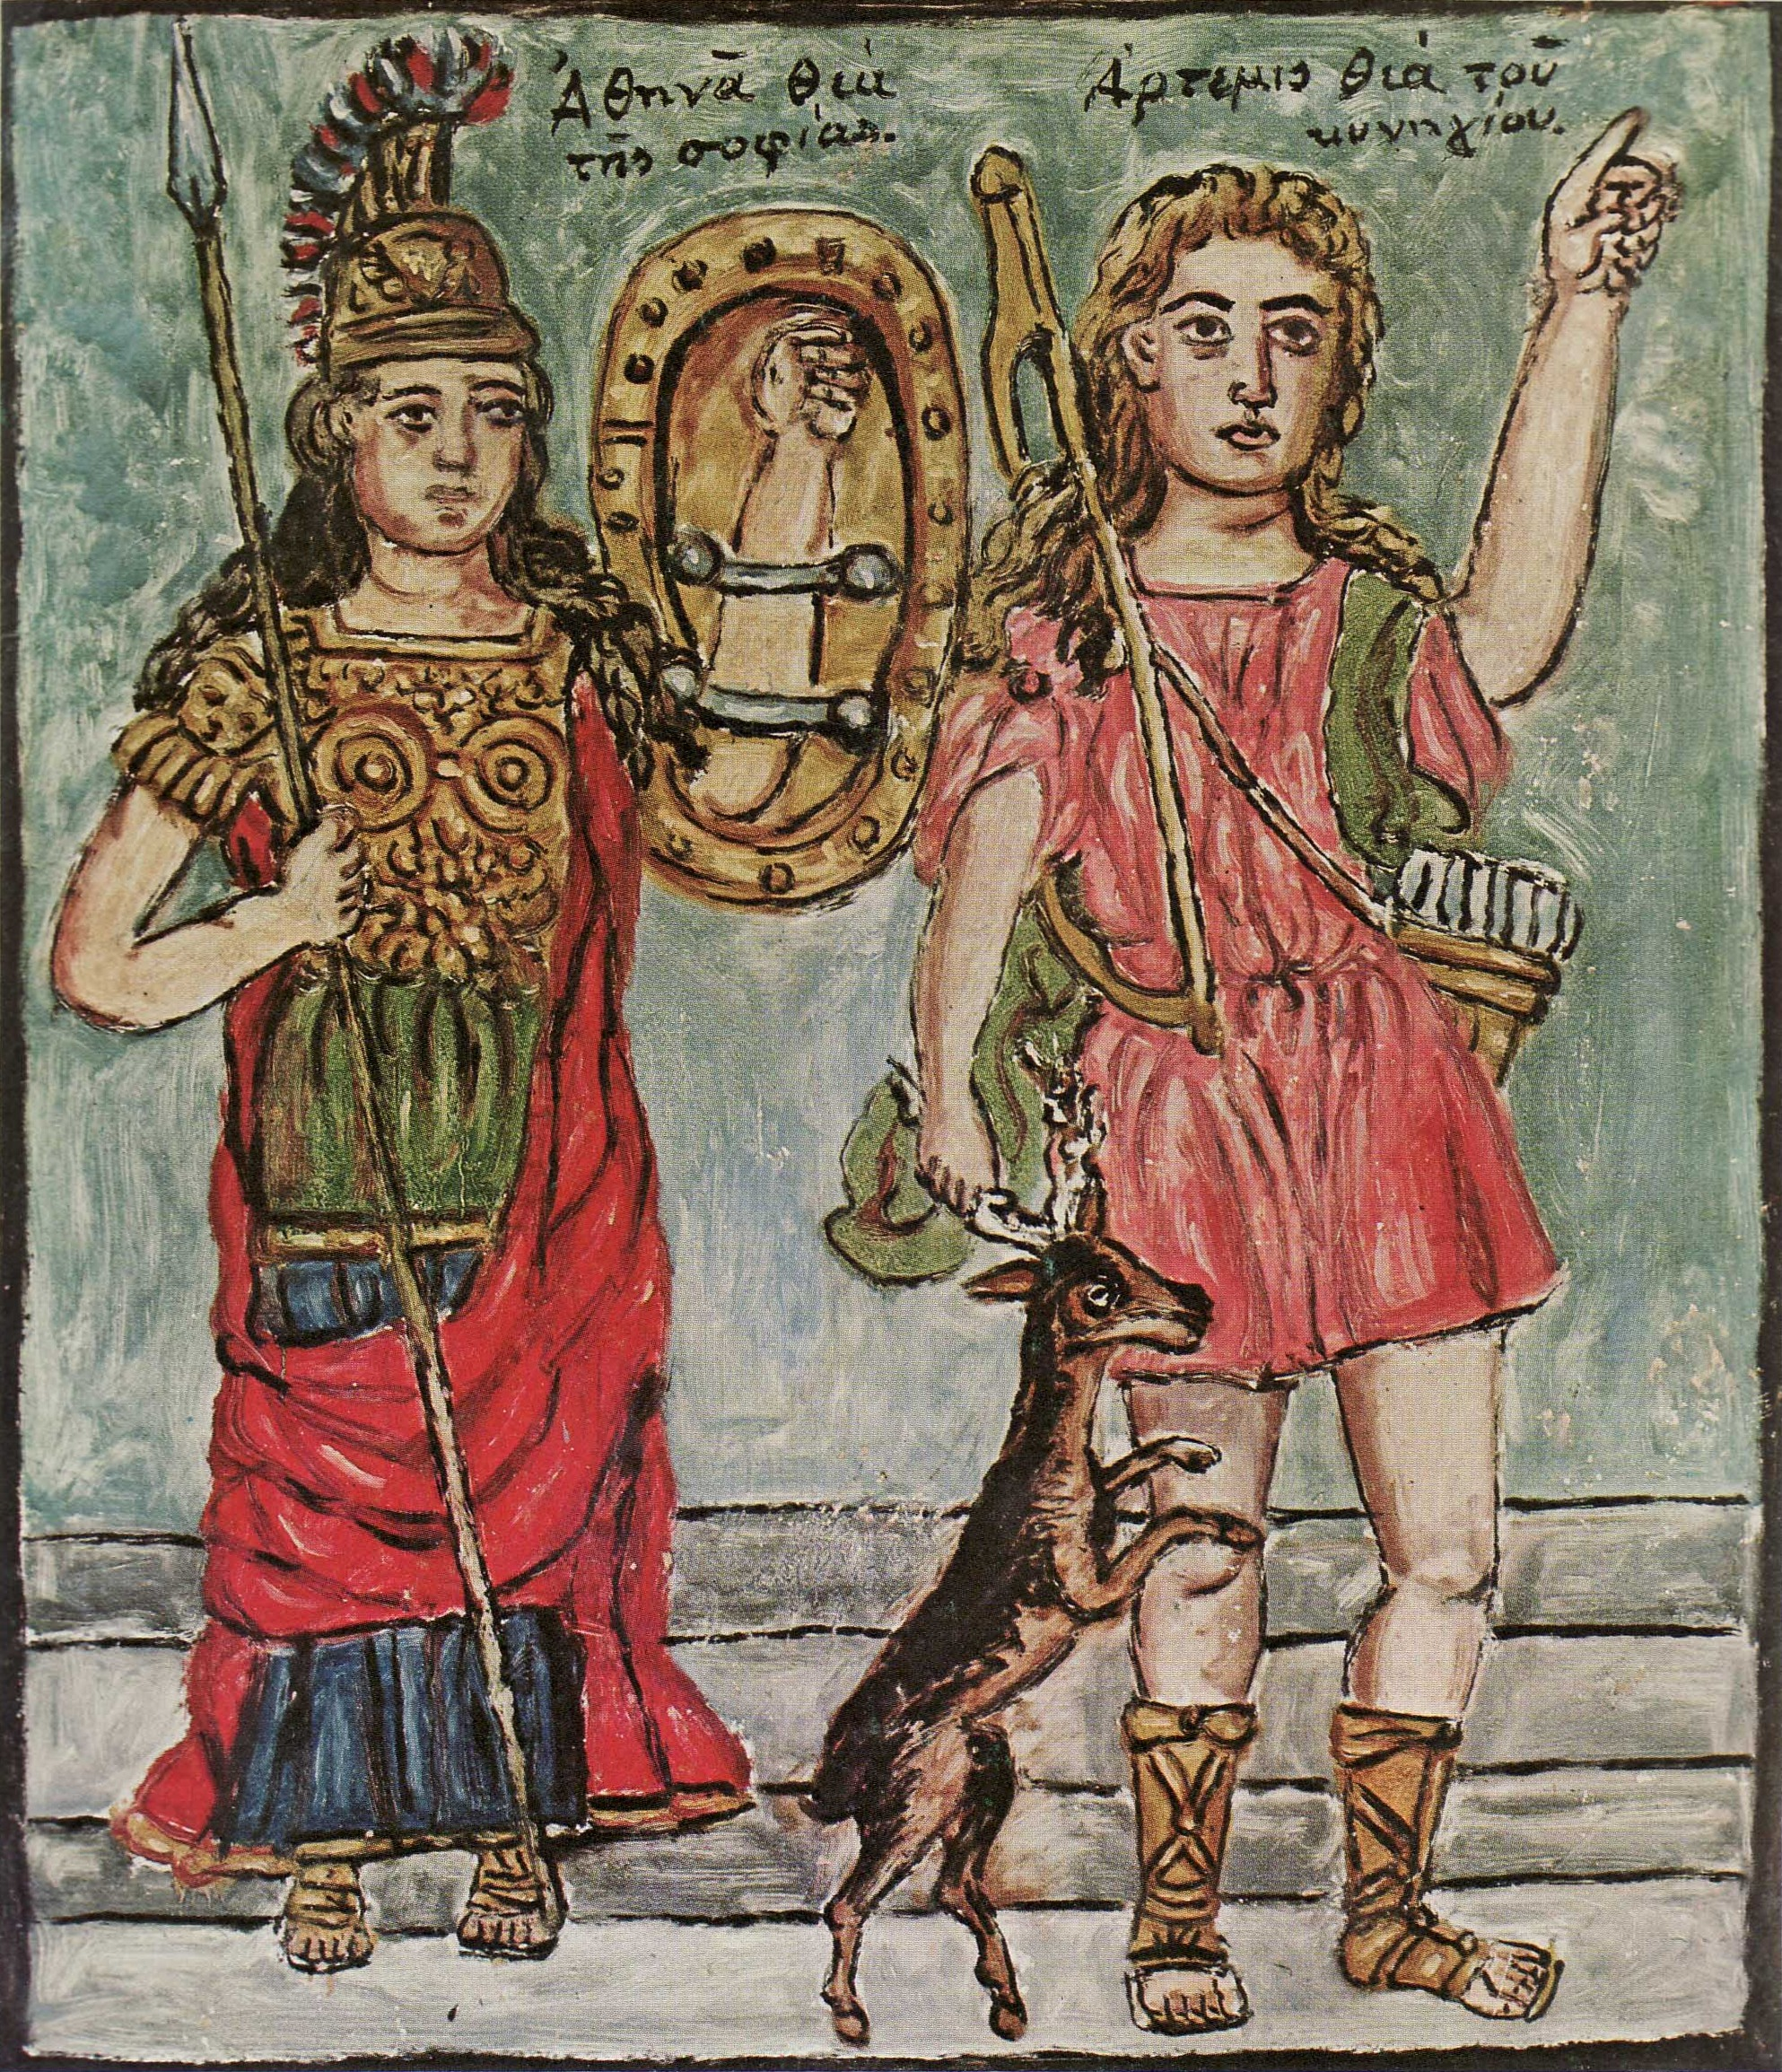 Athena and Artemis...